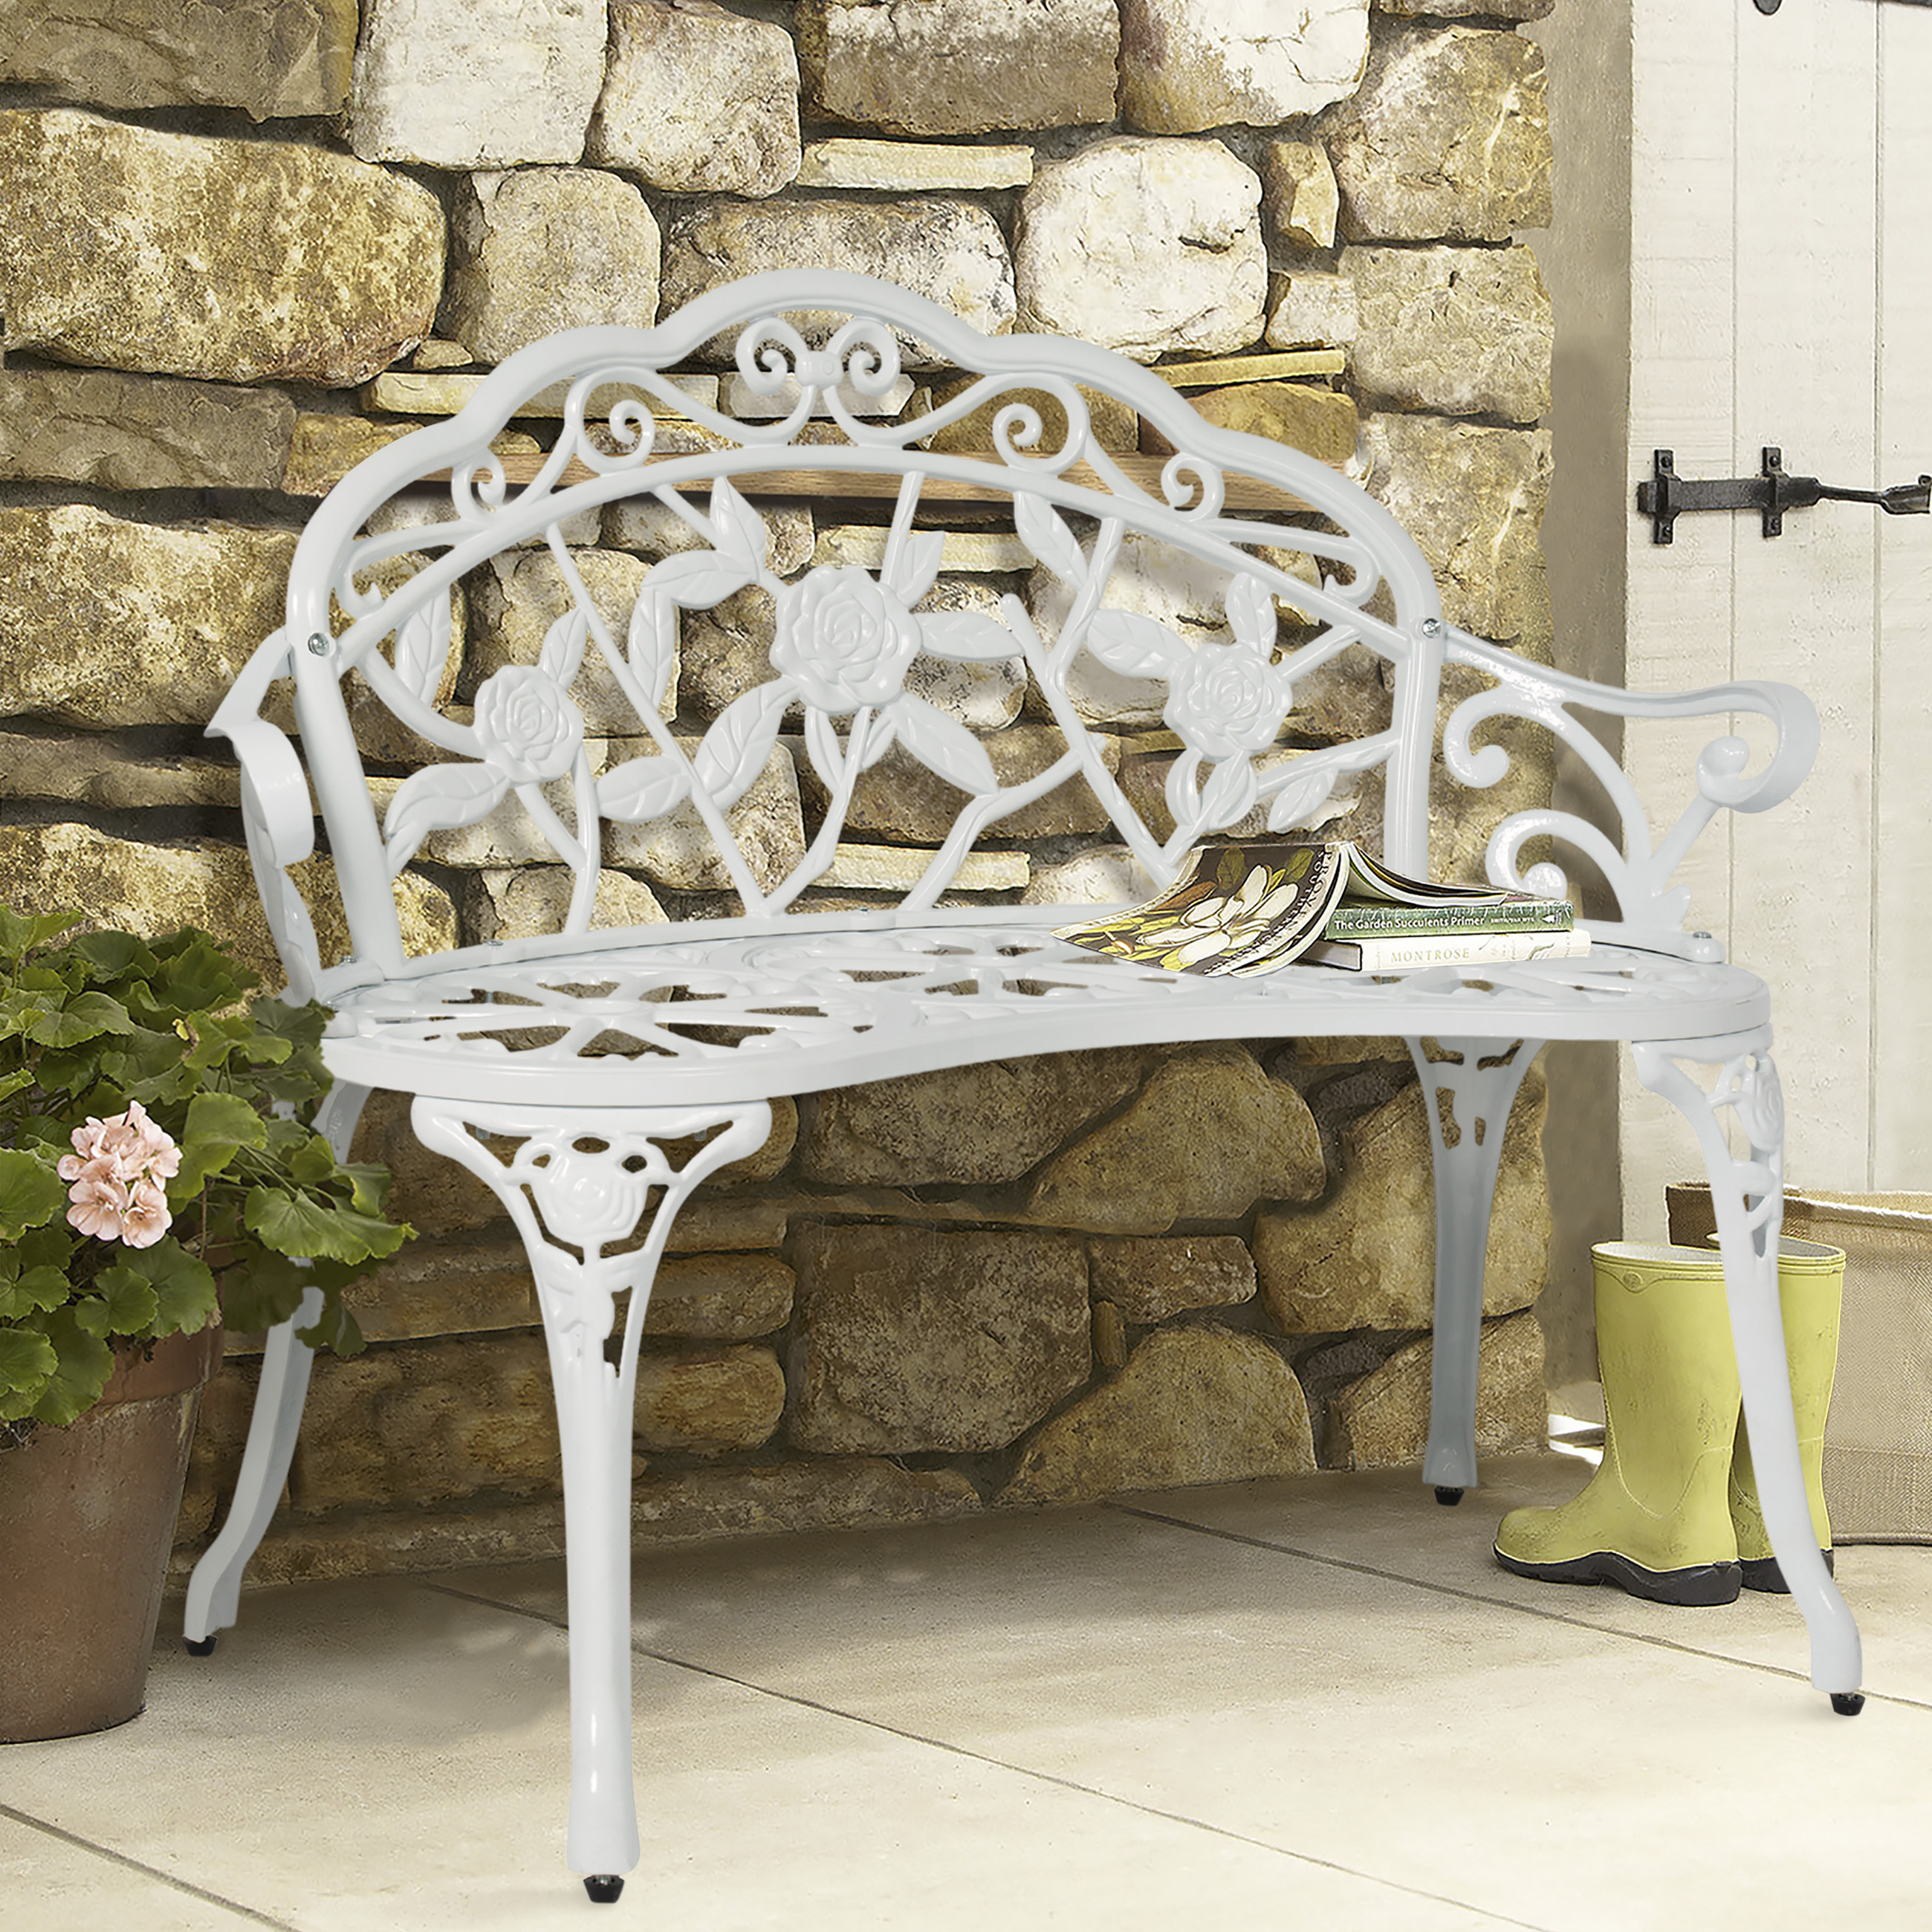 Best Choice Products BCP Outdoor Patio Garden Bench Park Yard Furniture Cast Iron Antique Rose White by